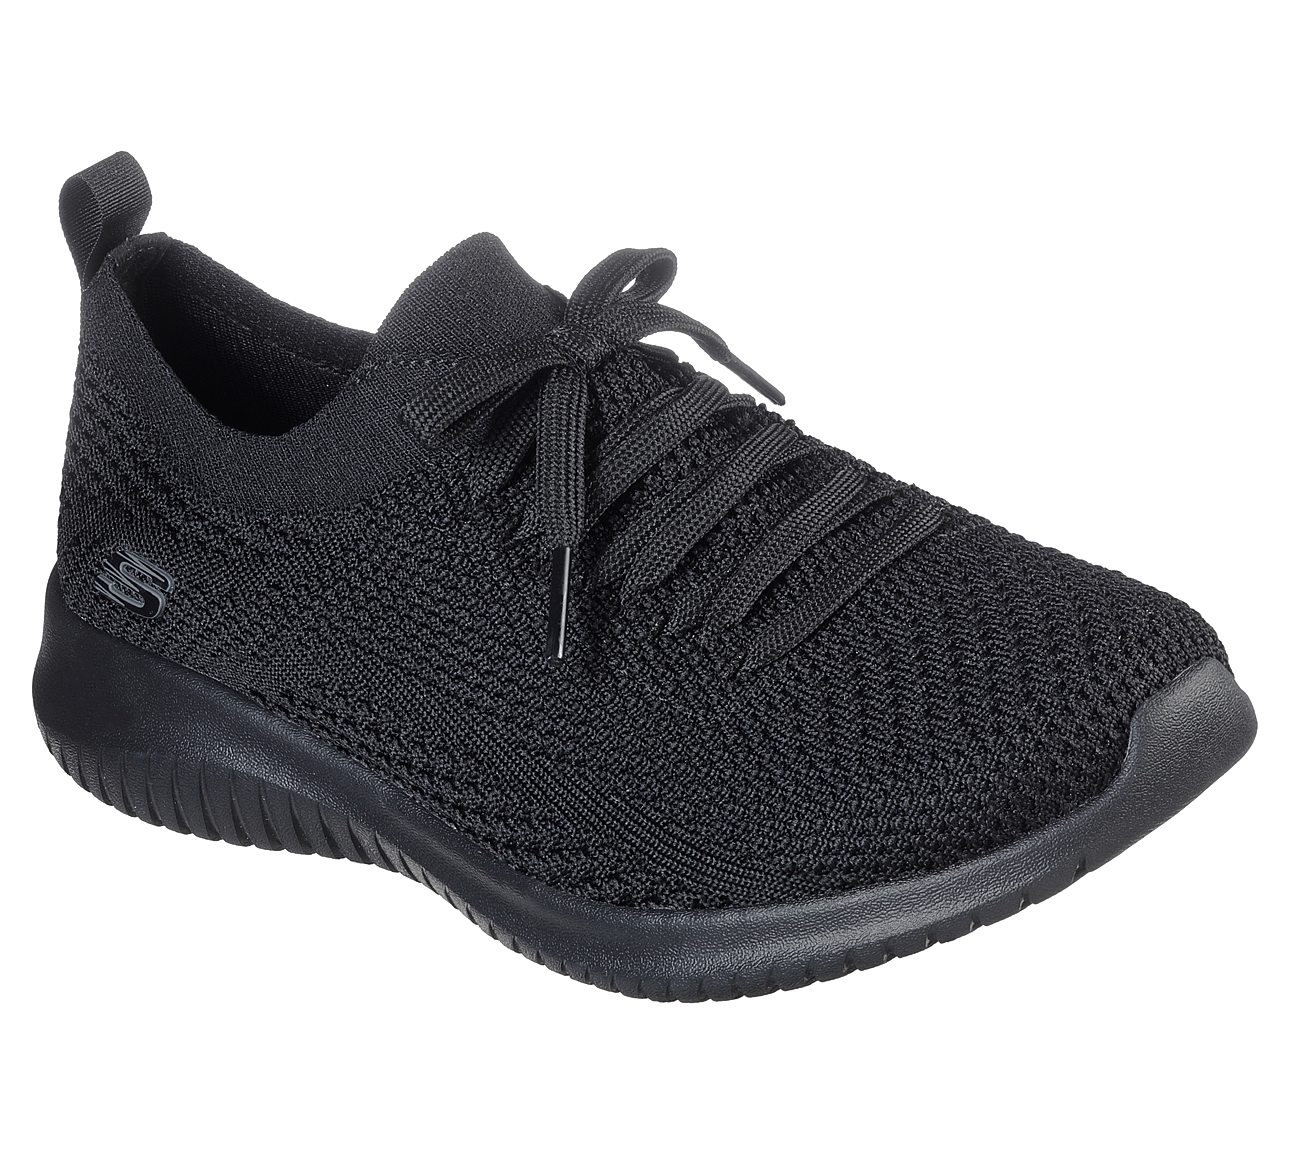 skechers skech knit black